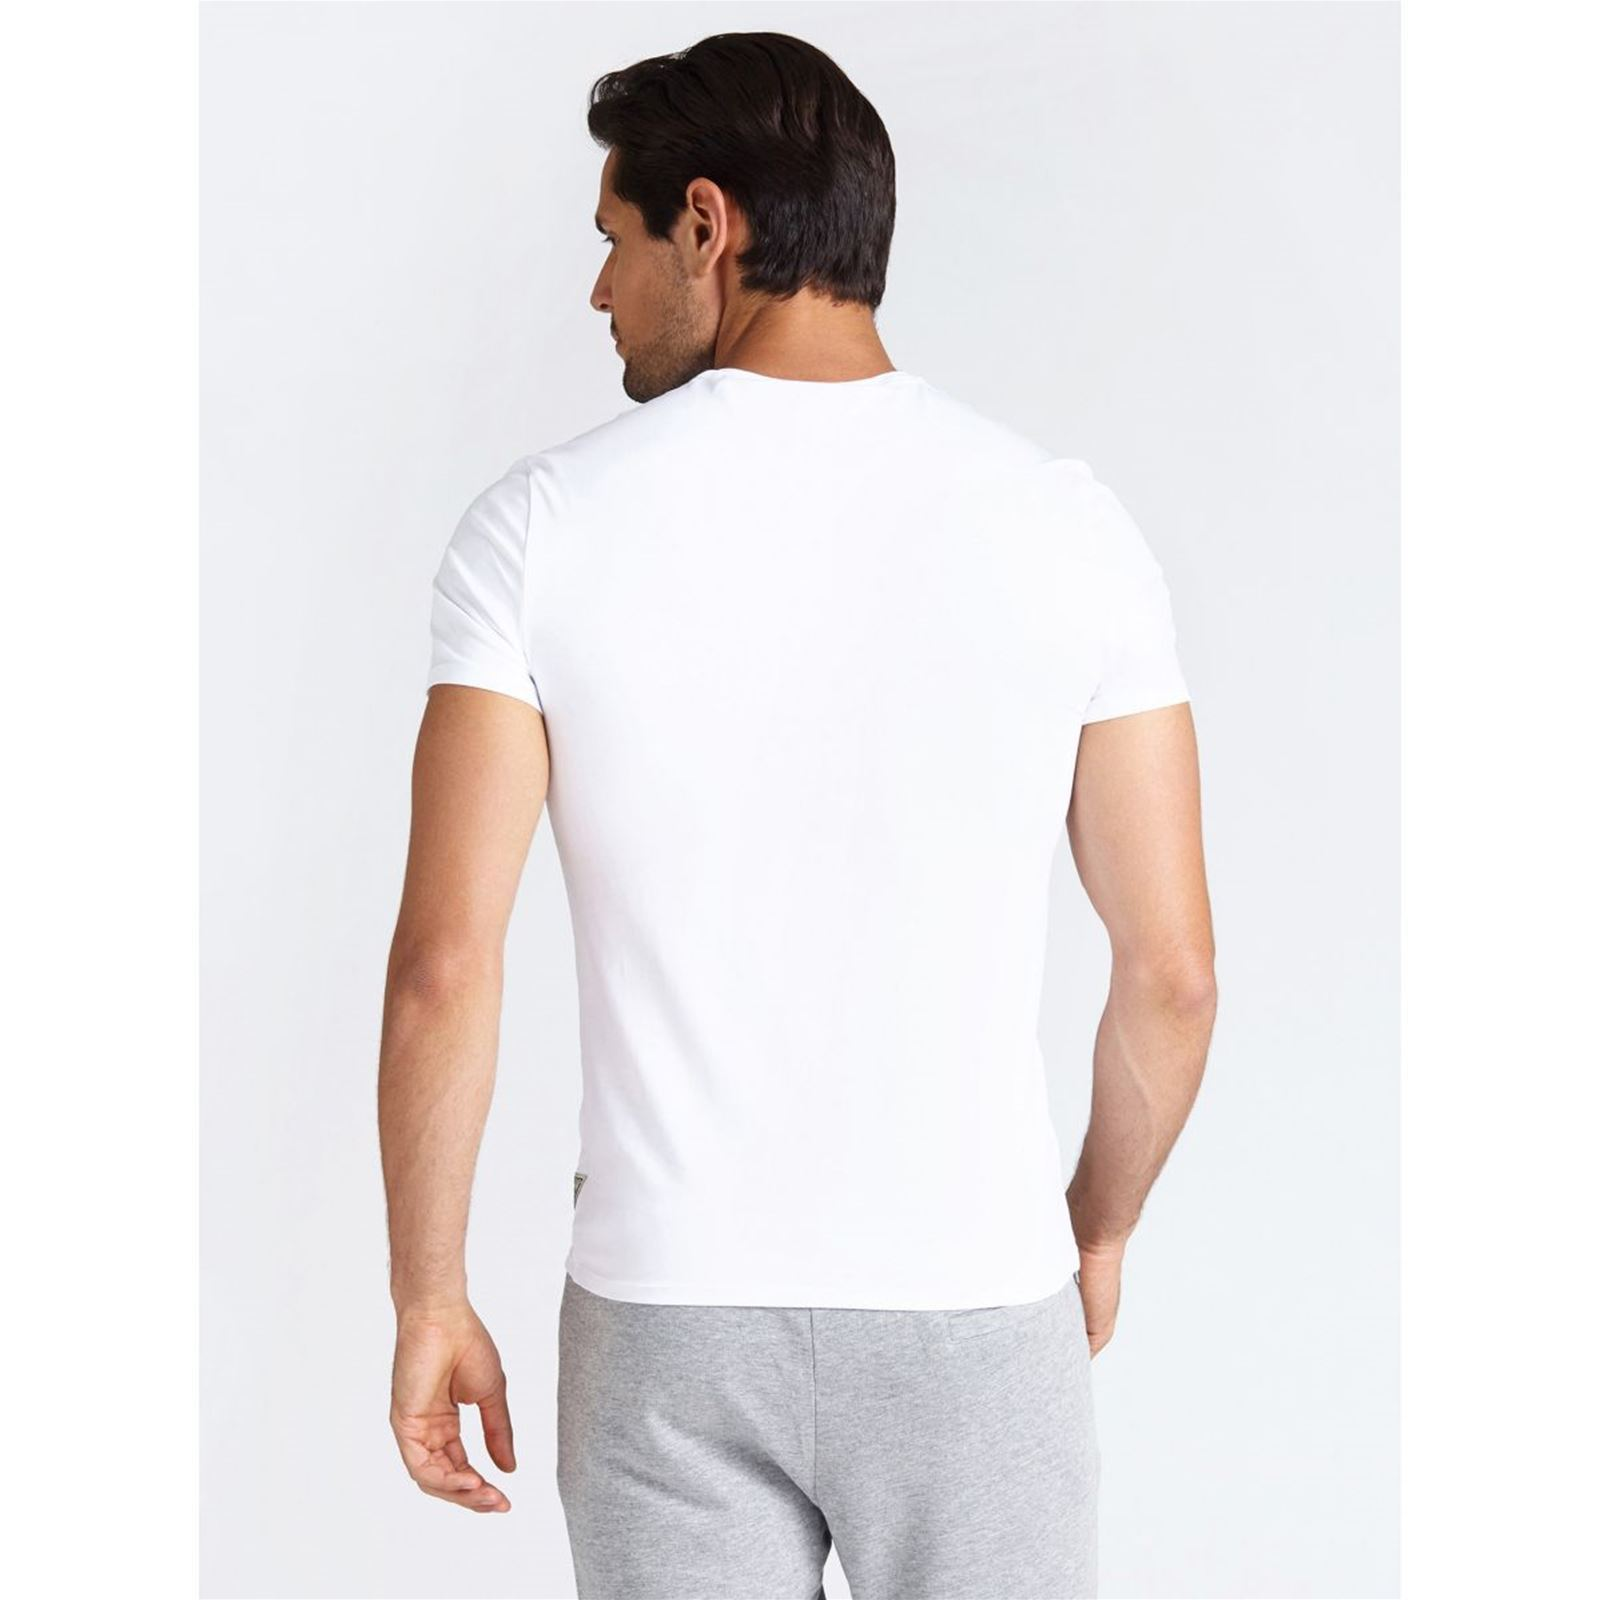 T shirt Manches V CourtesBlanc Homme Guess hdxrtsQC